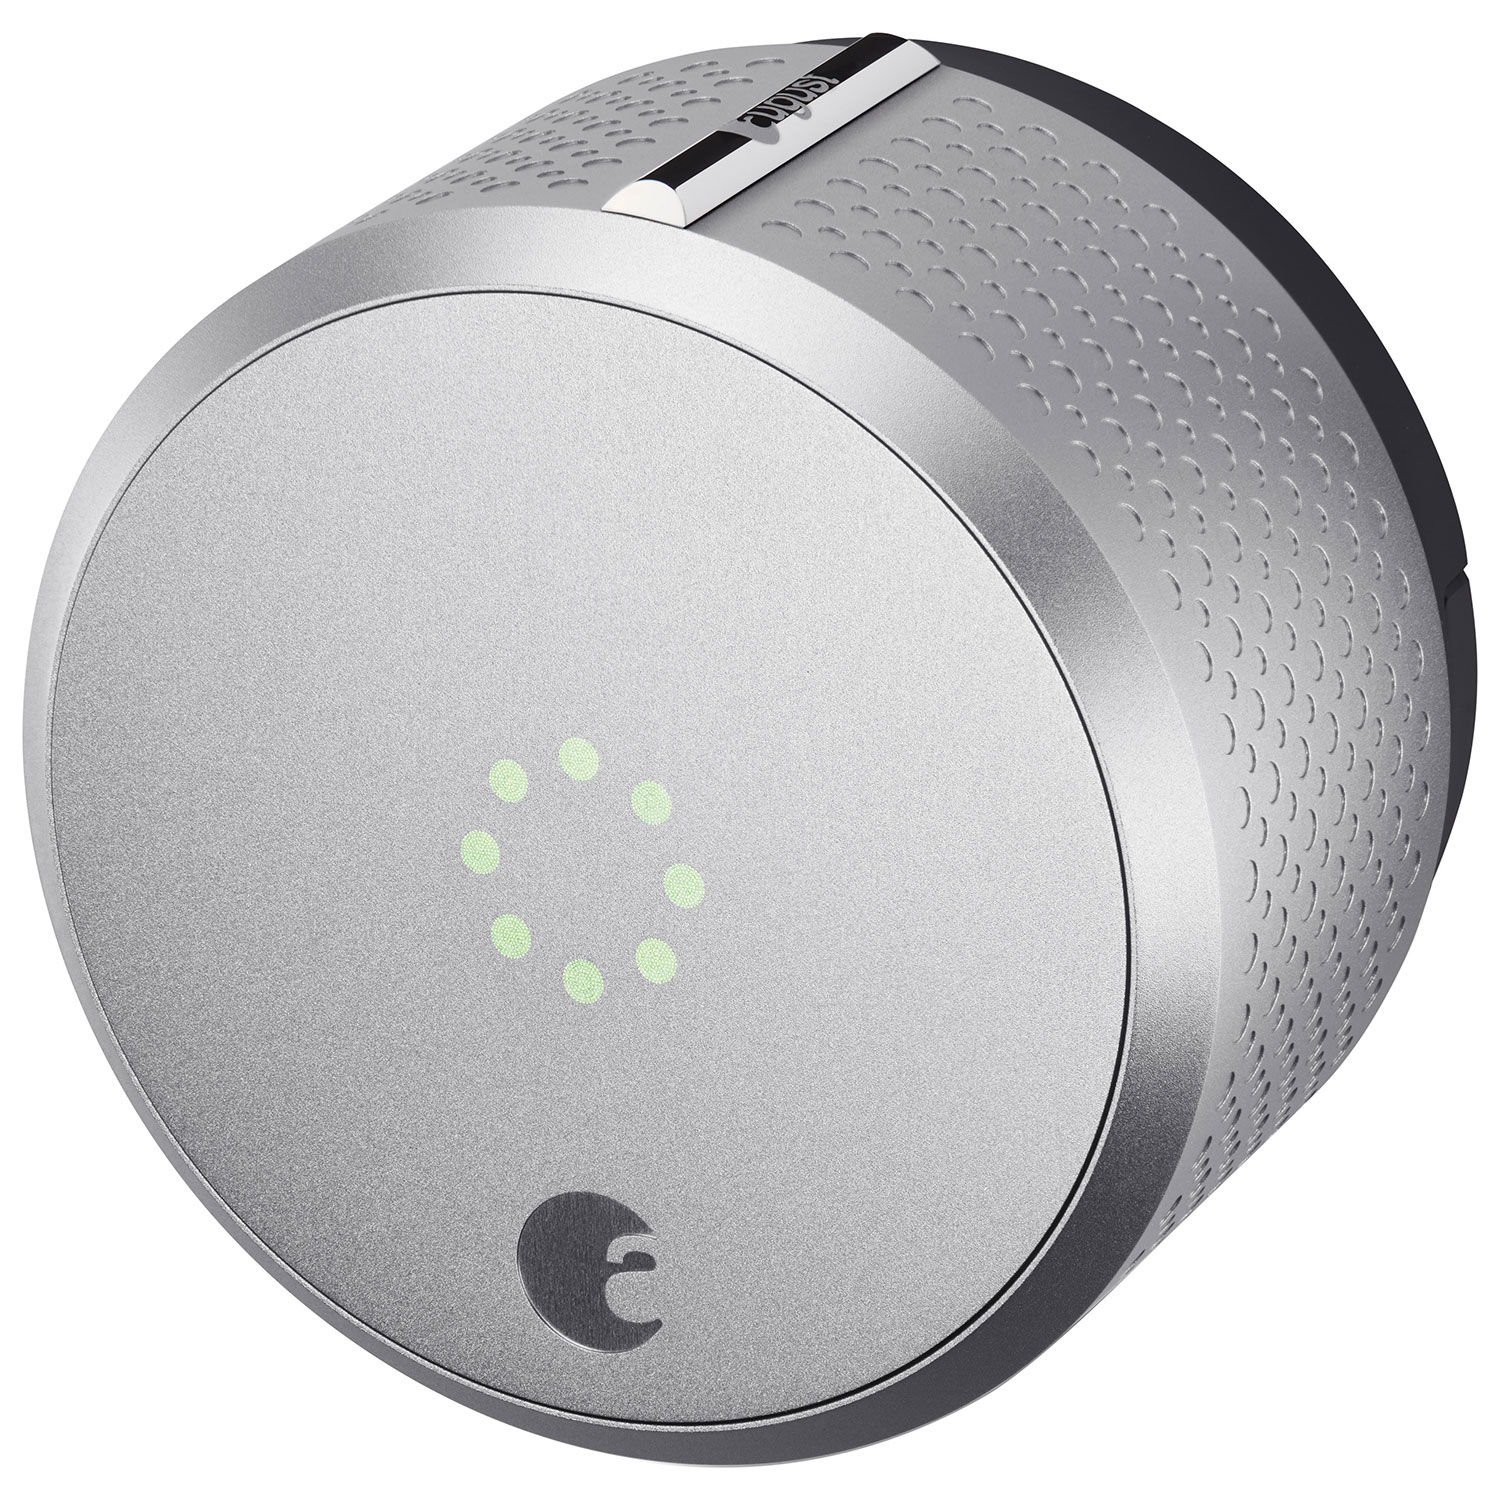 august smart lock home safety